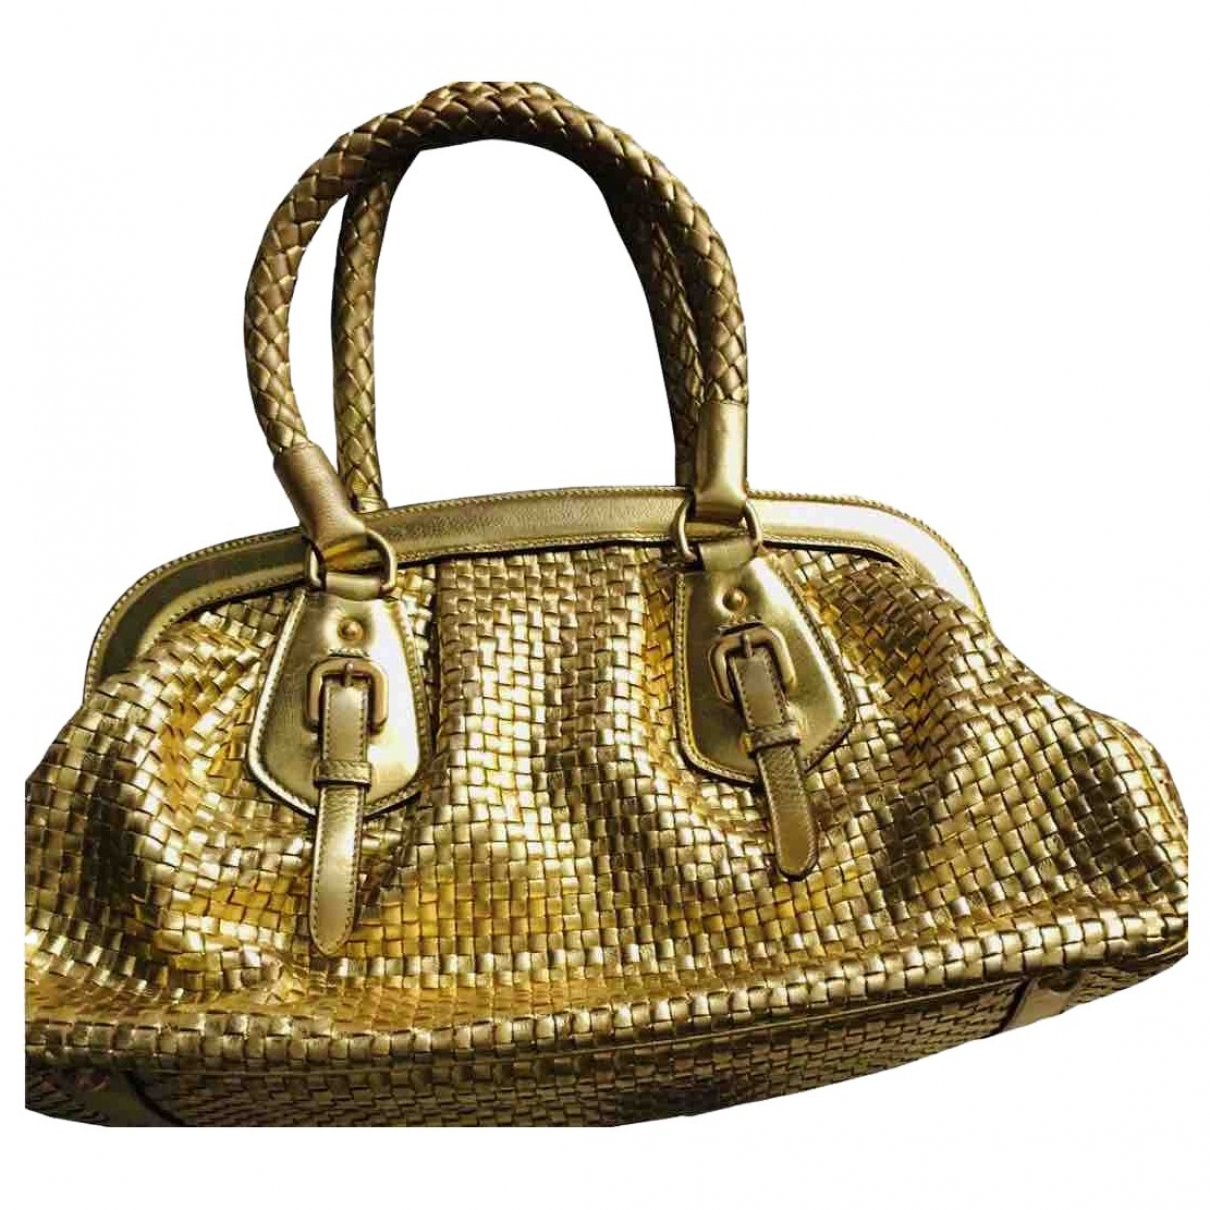 Prada \N Gold Leather handbag for Women \N